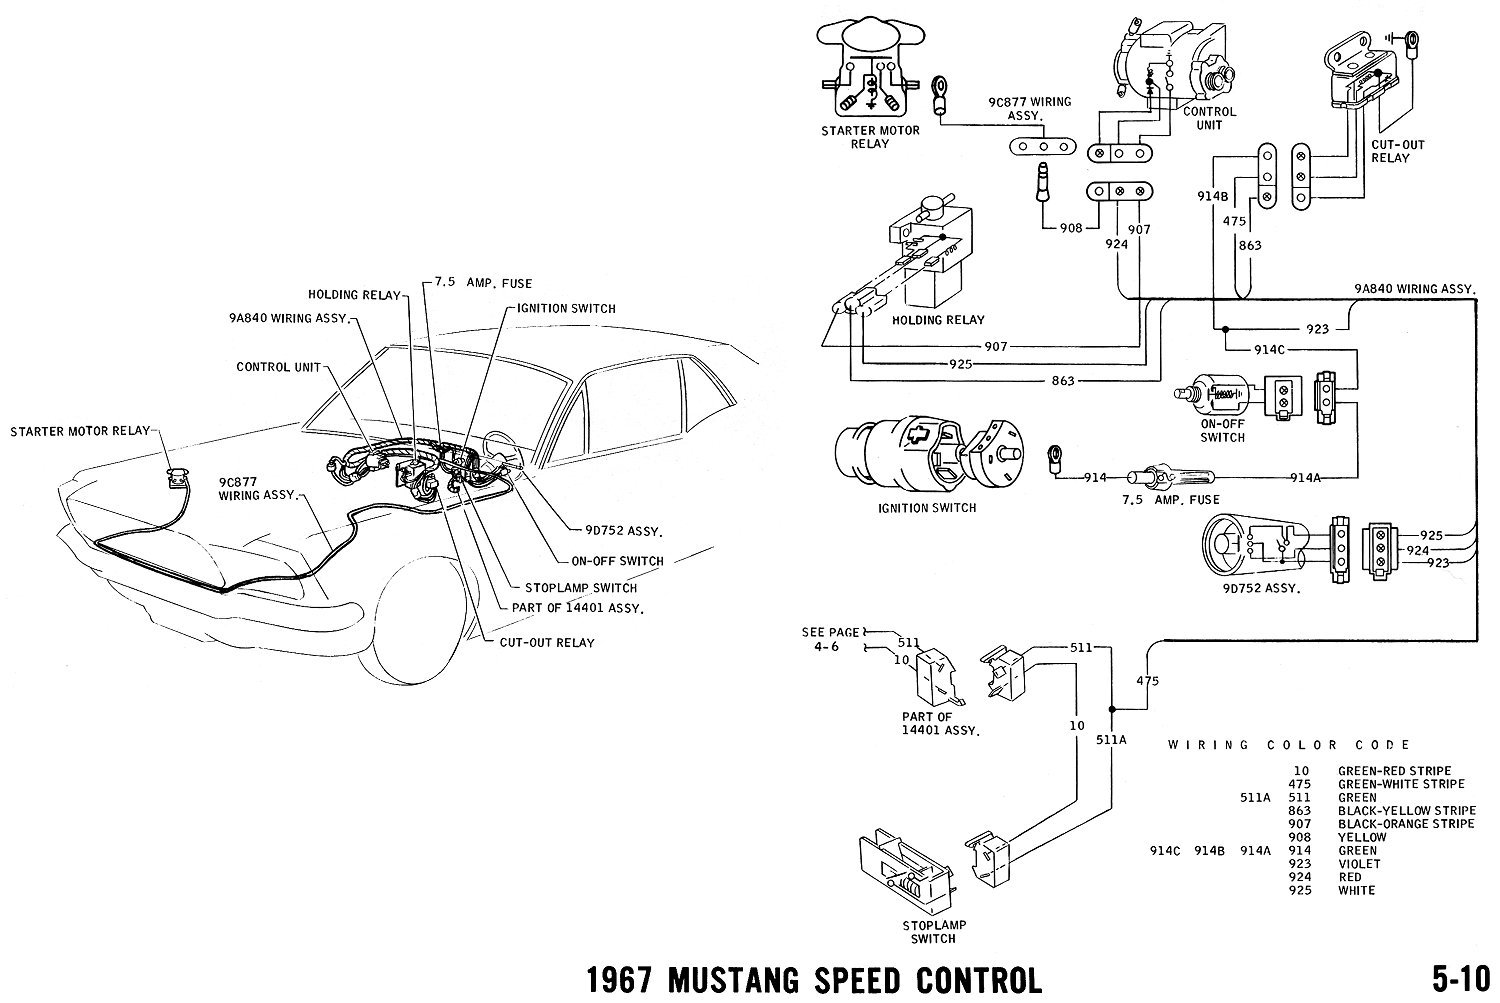 67speed 1967 mustang wiring and vacuum diagrams average joe restoration 1965 Mustang Restoration Guide at n-0.co